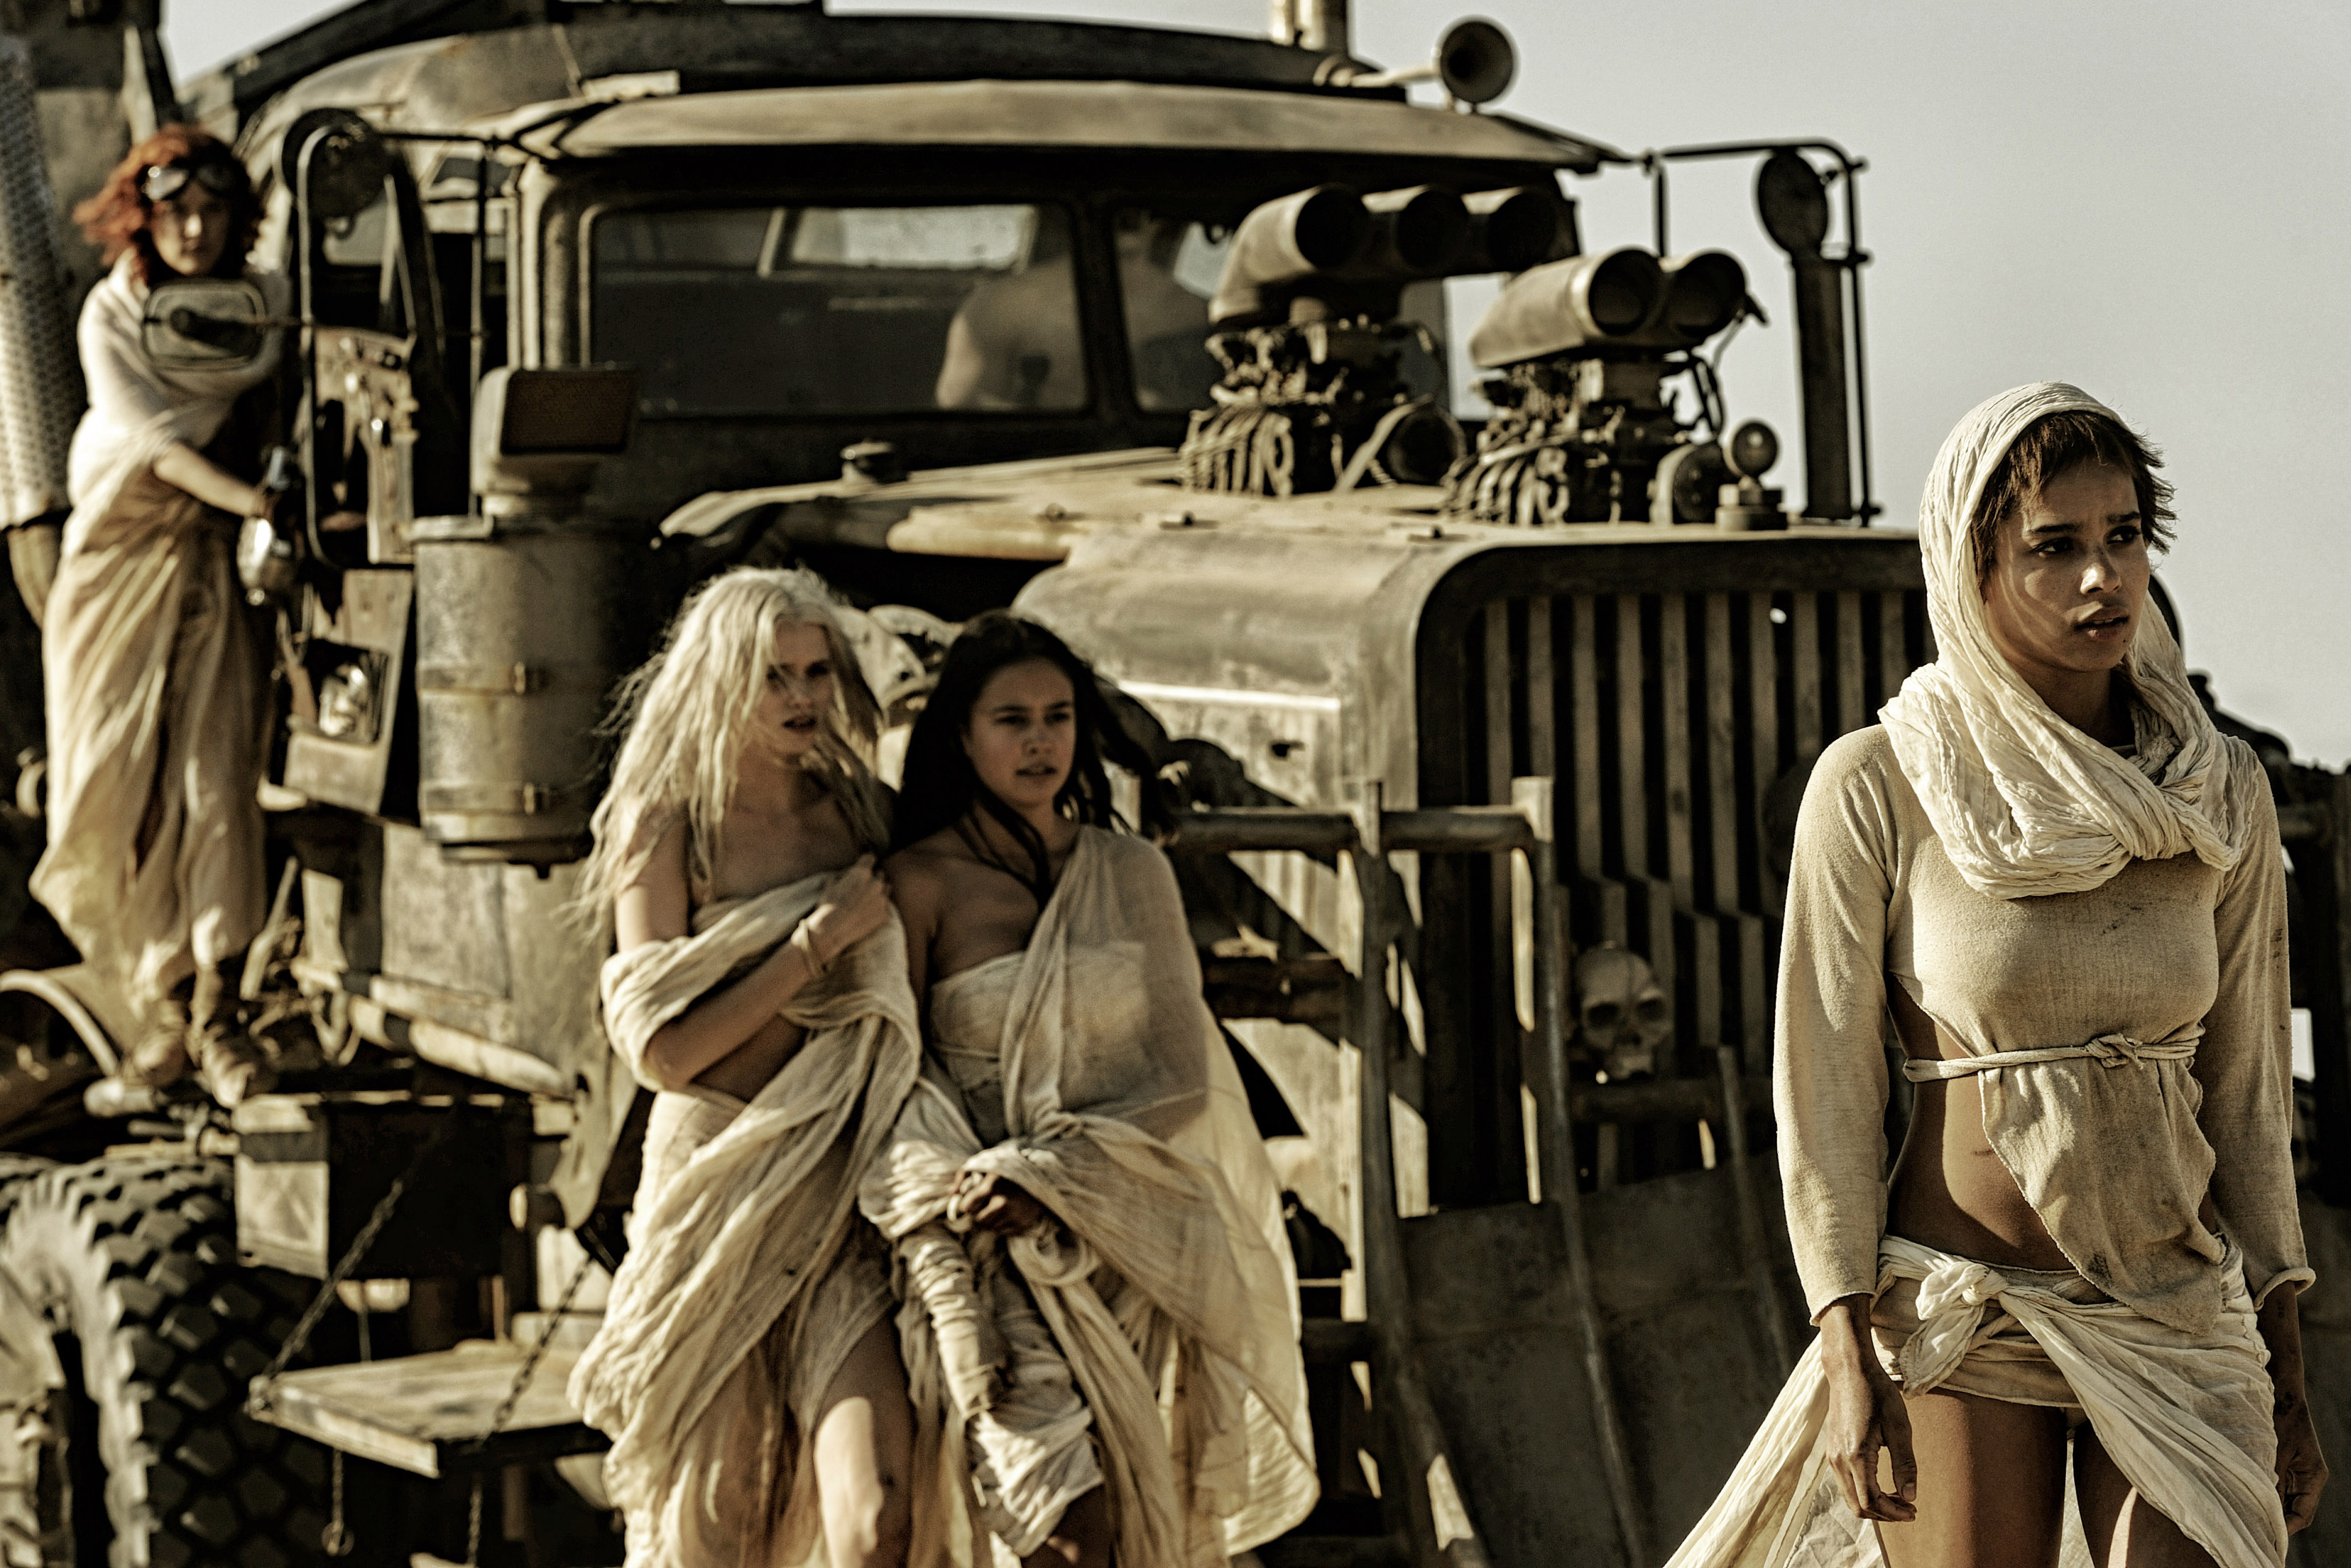 MAD MAX: FURY ROAD - 2015 FILM STILL - Photo Credit: Jasin Boland © 2015 WV FILMS IV LLC AND RATPAC-DUNE ENTERTAINMENT LLC - U.S., CANADA, BAHAMAS & BERMUDA © 2015 VILLAGE ROADSHOW FILMS (BVI) LIMITED - ALL OTHER TERRITORIES